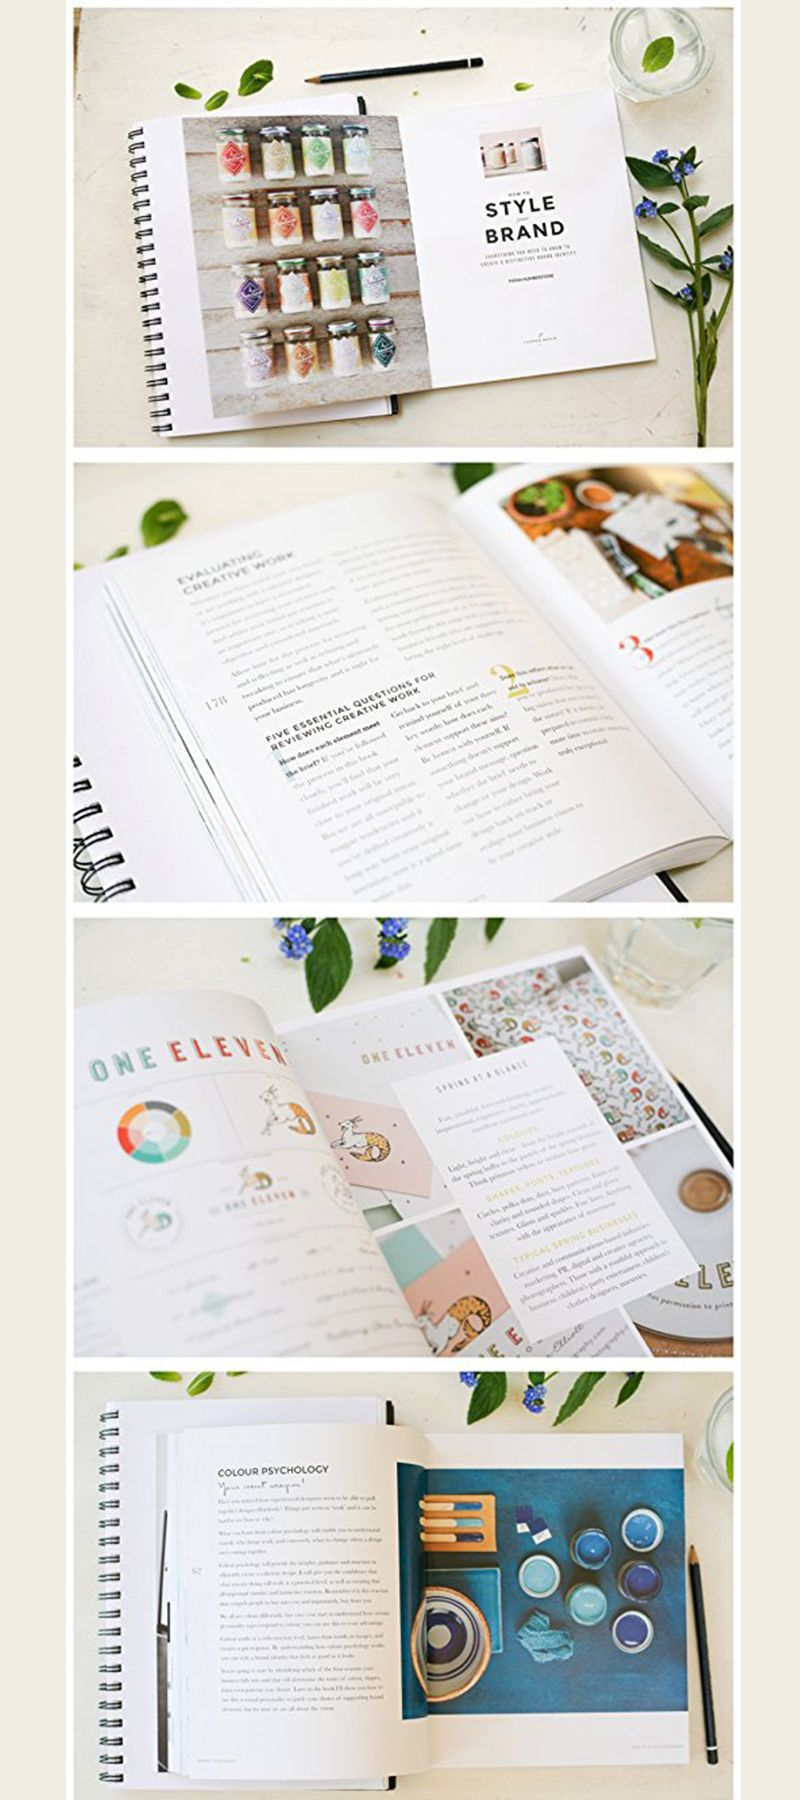 How To Style Your Brand Everything You Need To Know To Create A Distinctive Brand Identity Branding Website Design Website Branding Web Development Design